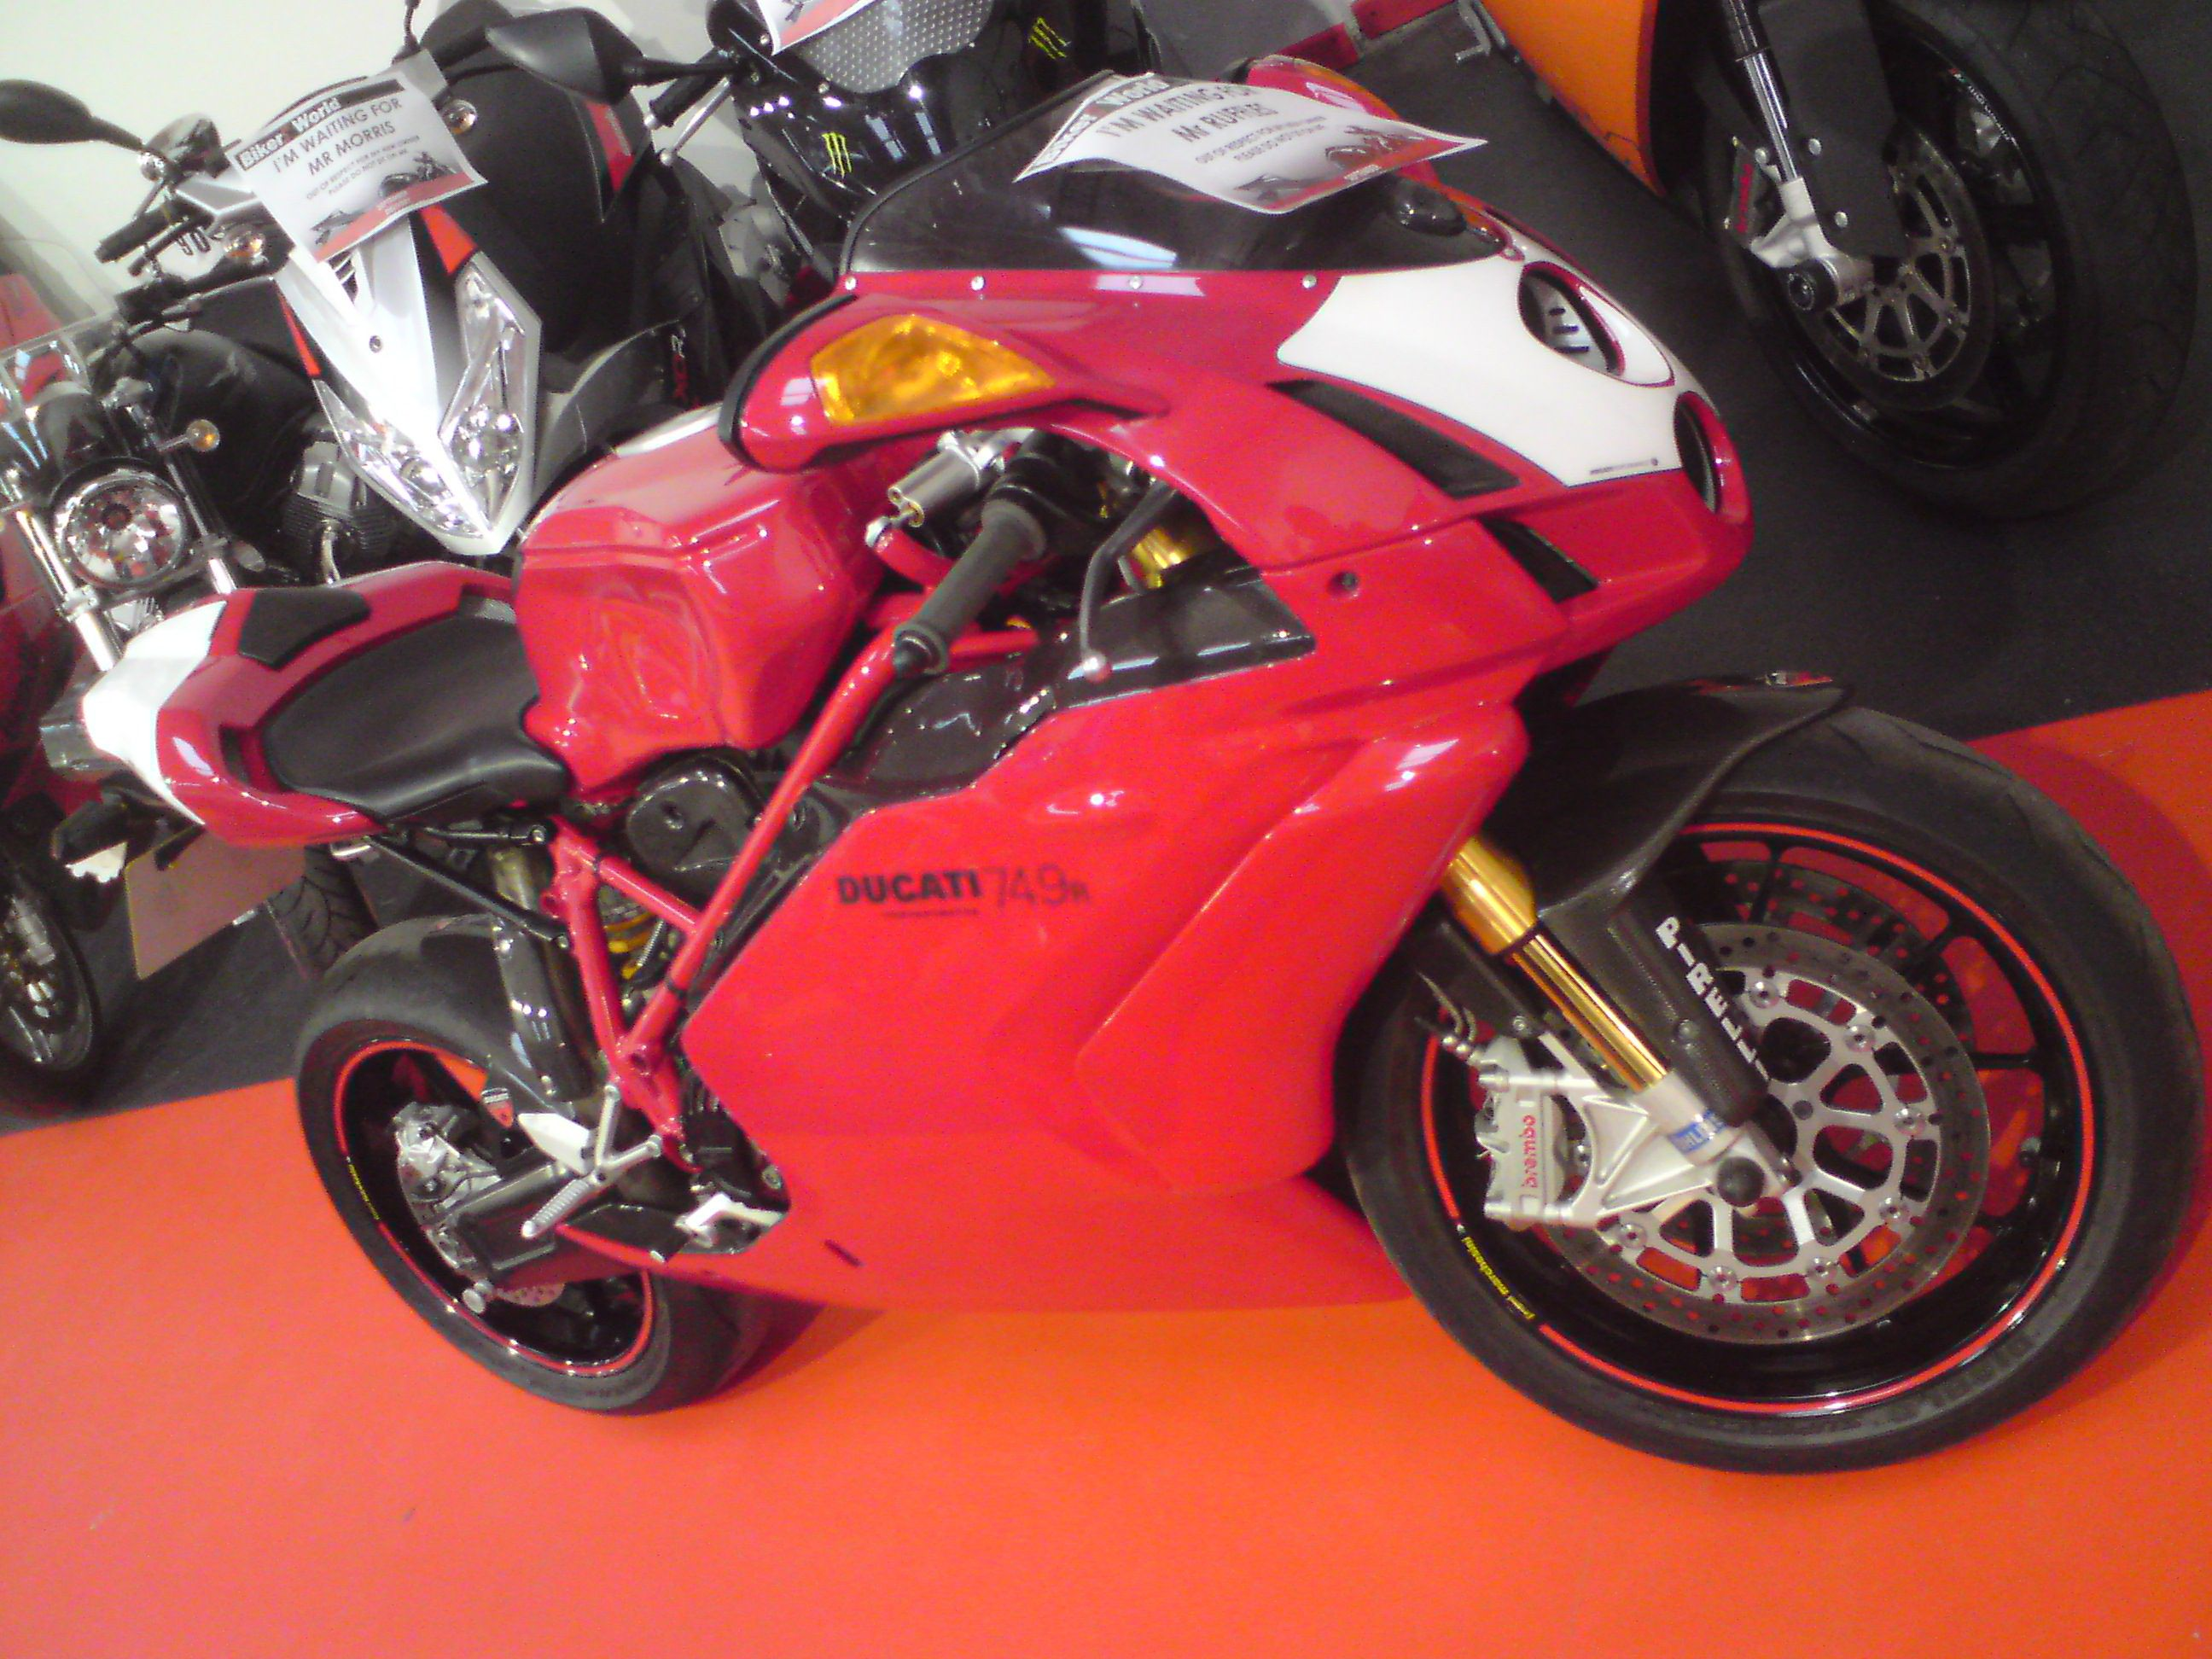 medium resolution of my old ducati 749r 2004 model full carbon not to be dropped